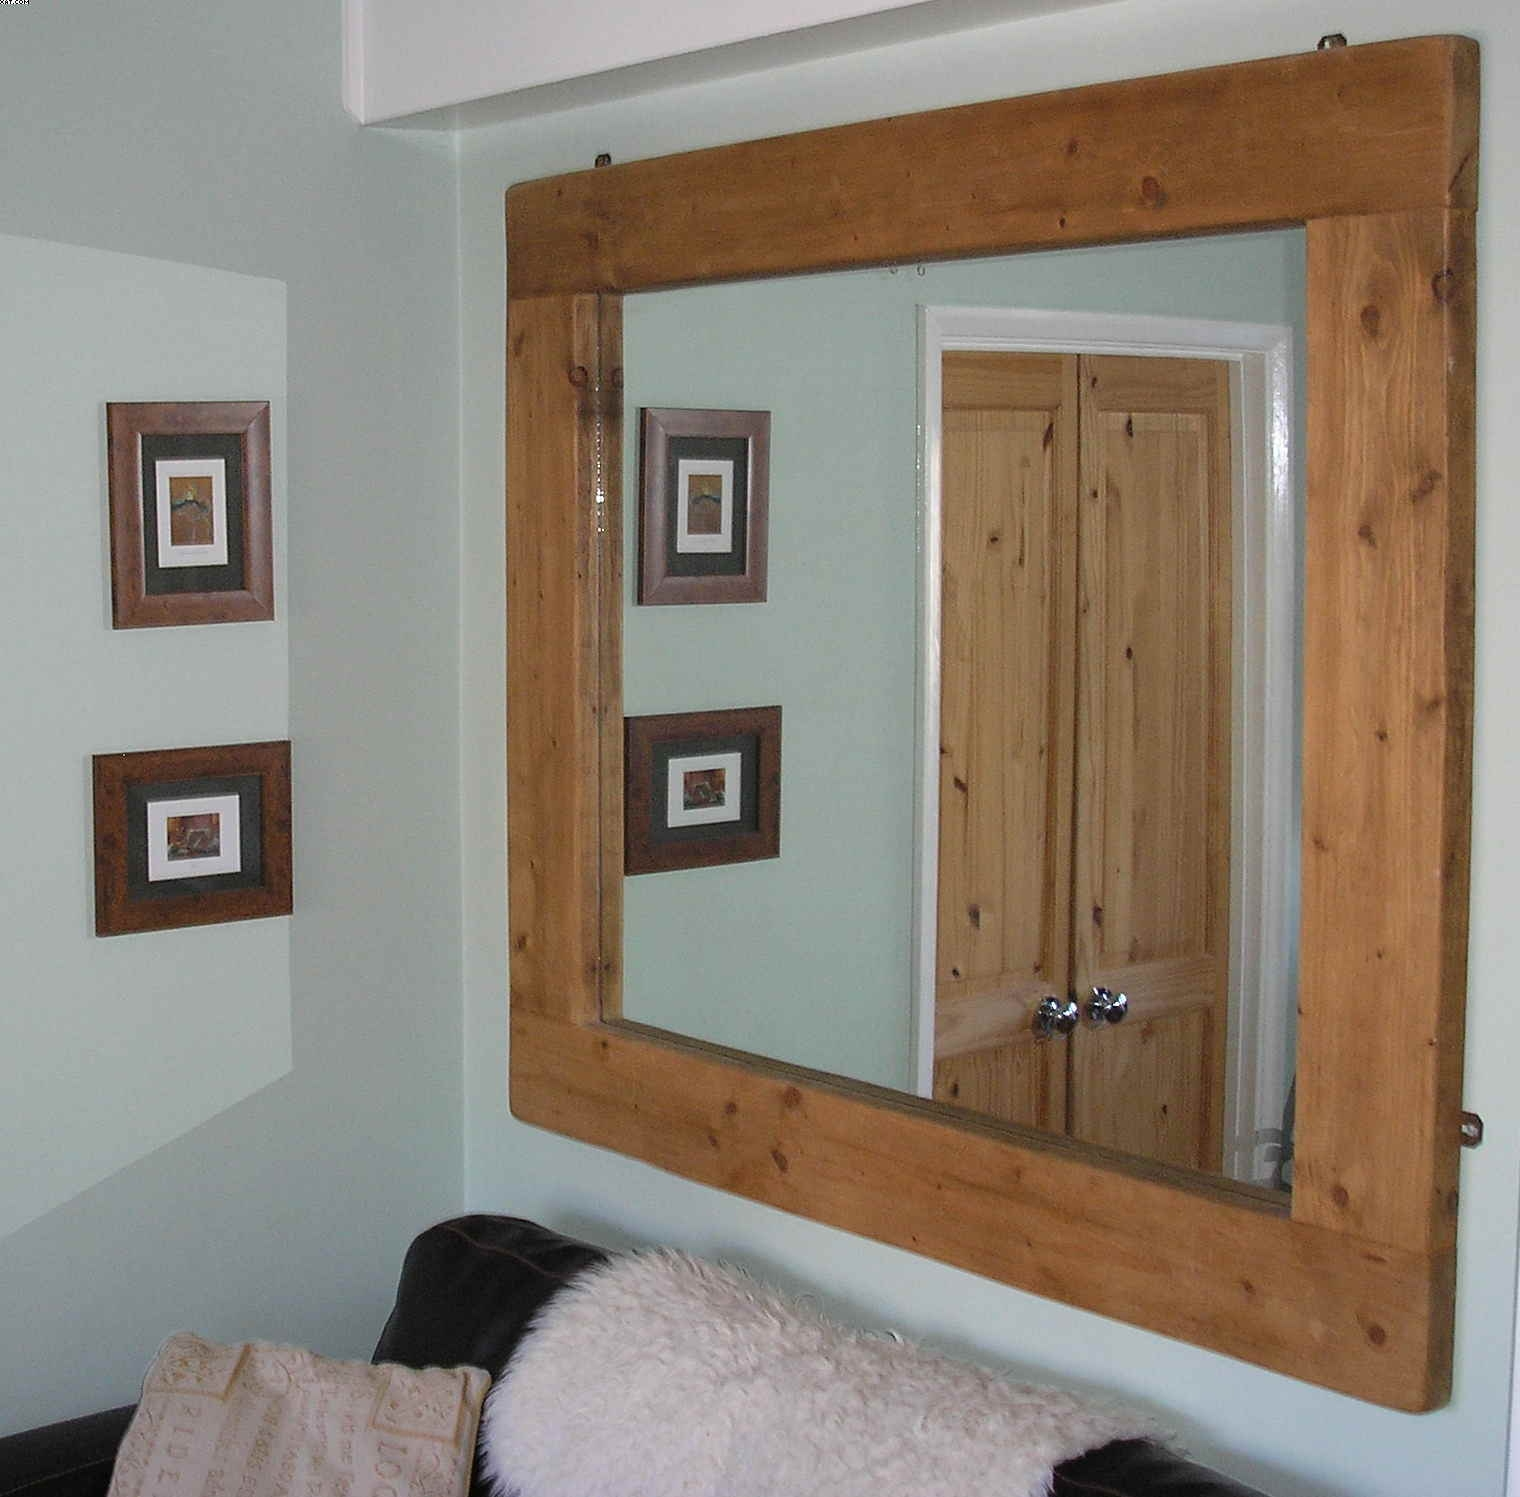 Mirrored Wall Frames For Pictures